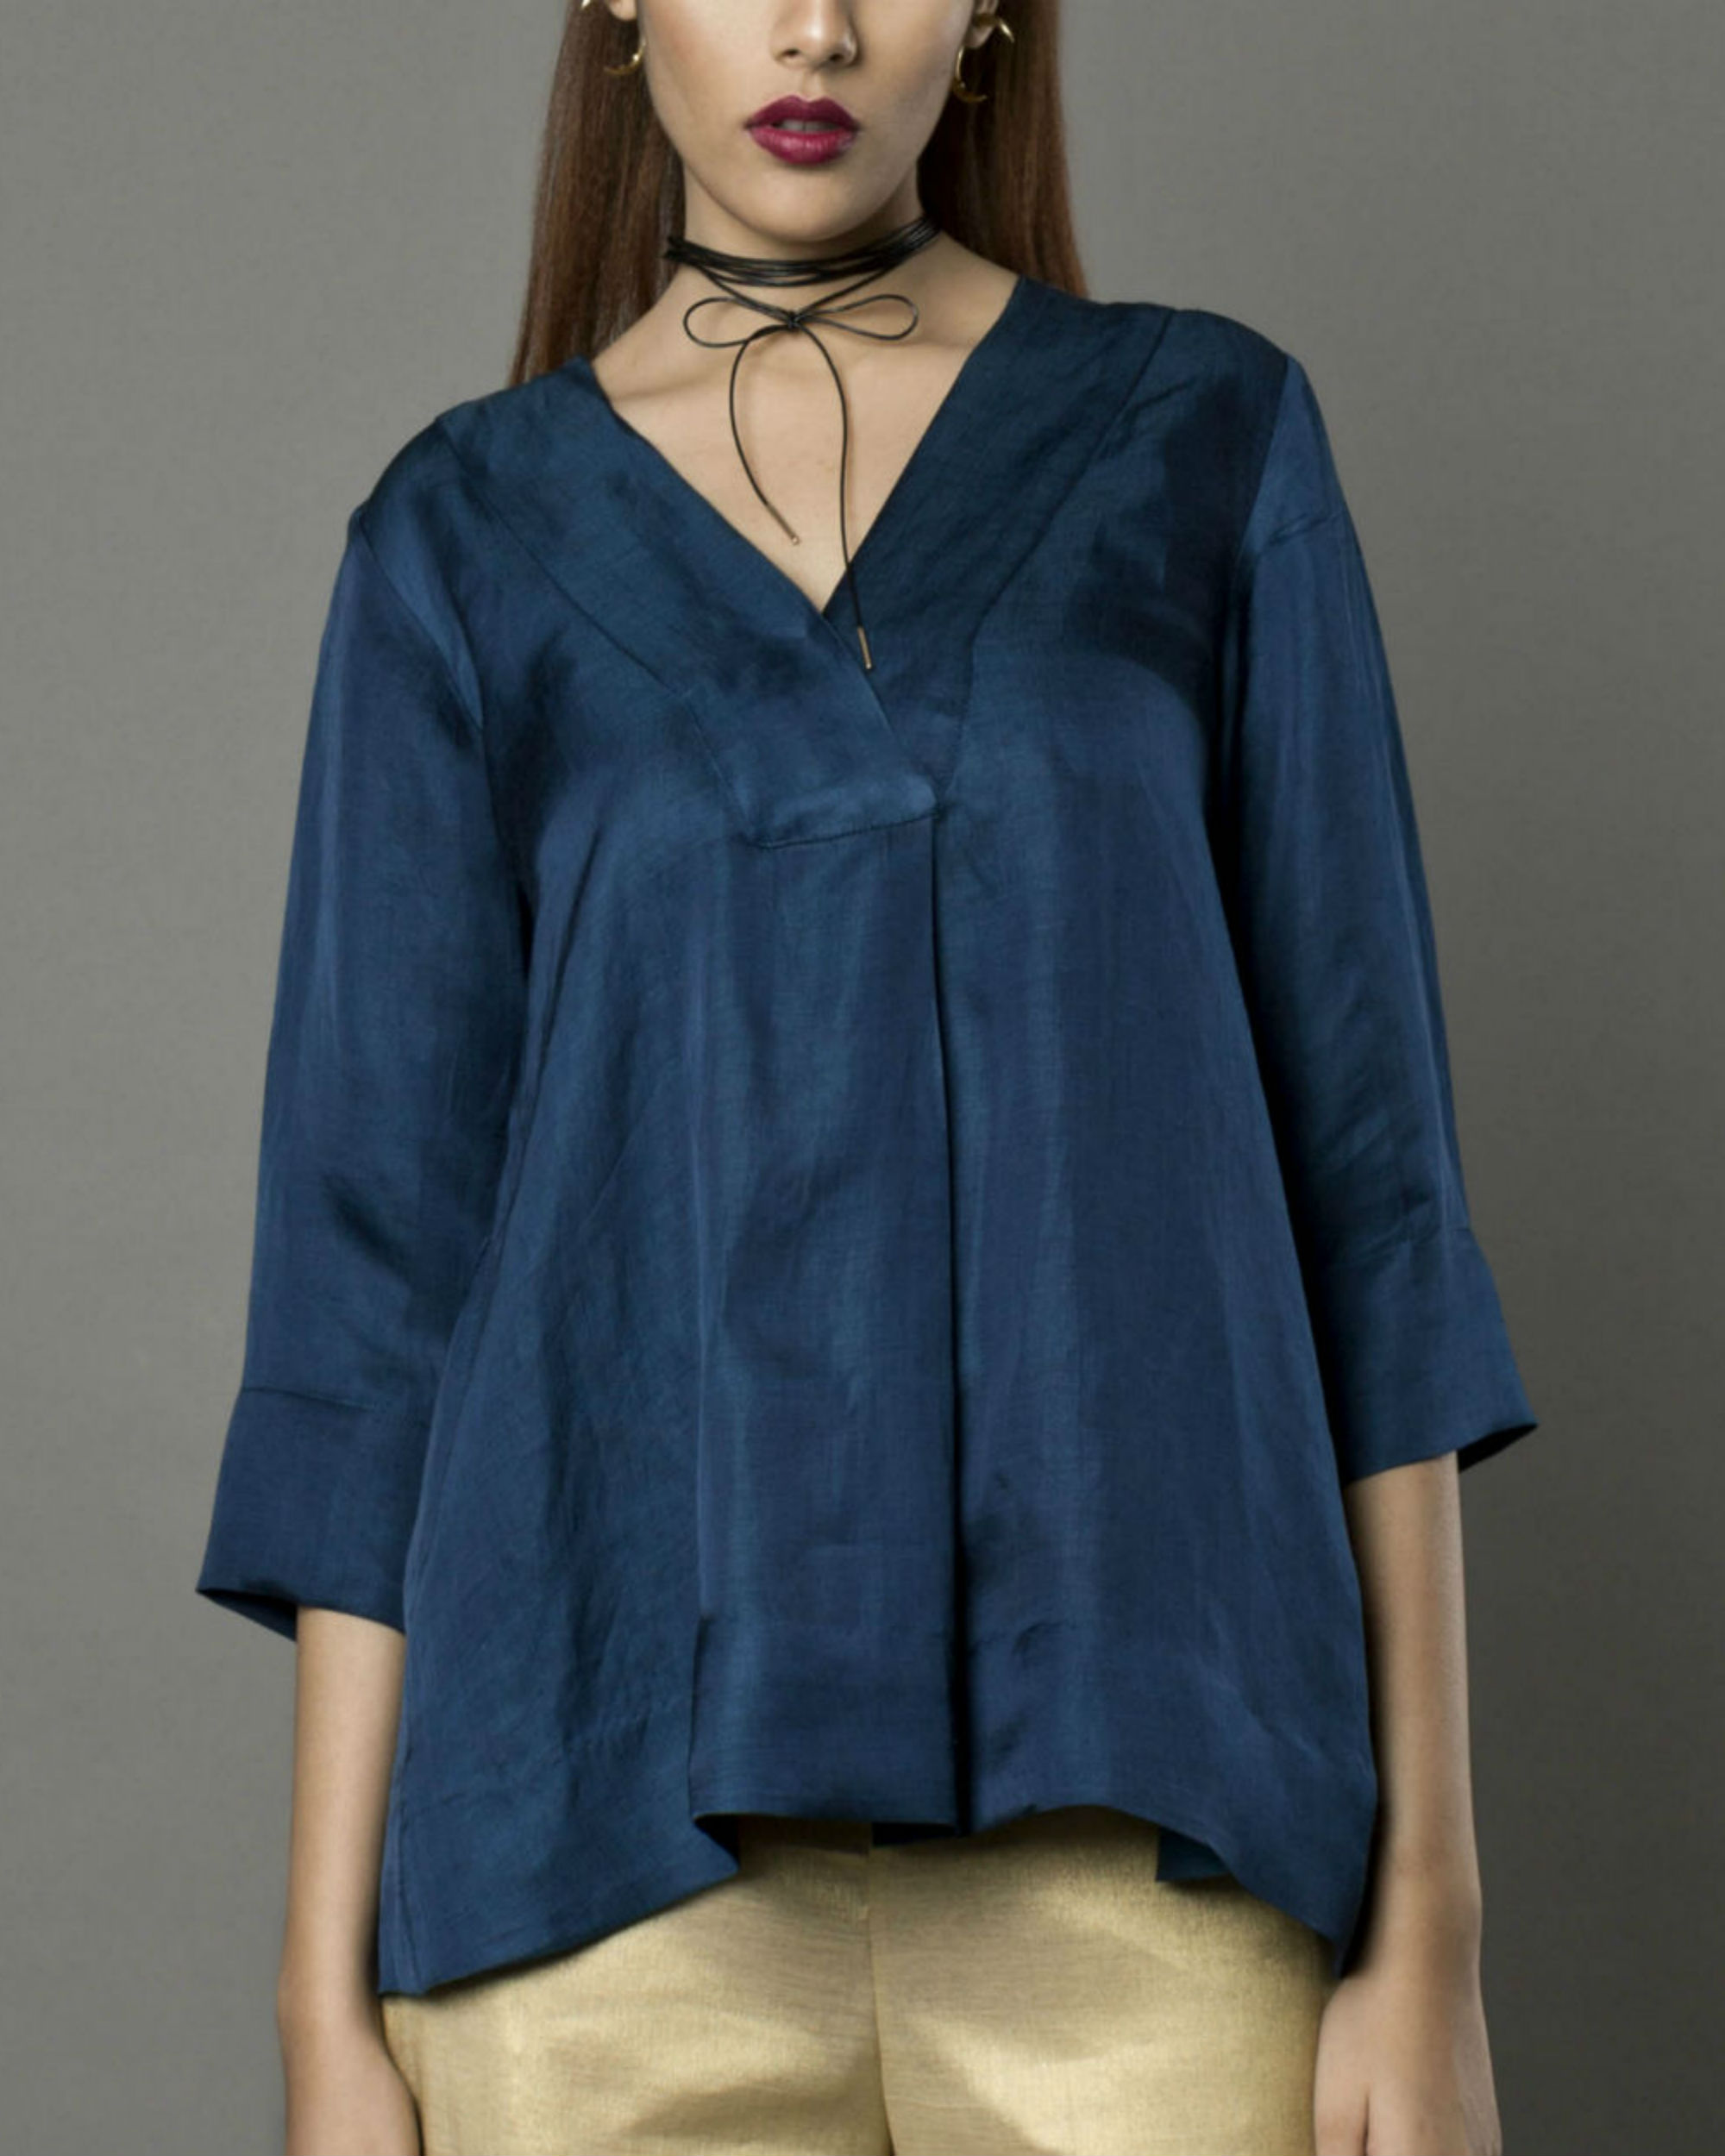 Wili navy top